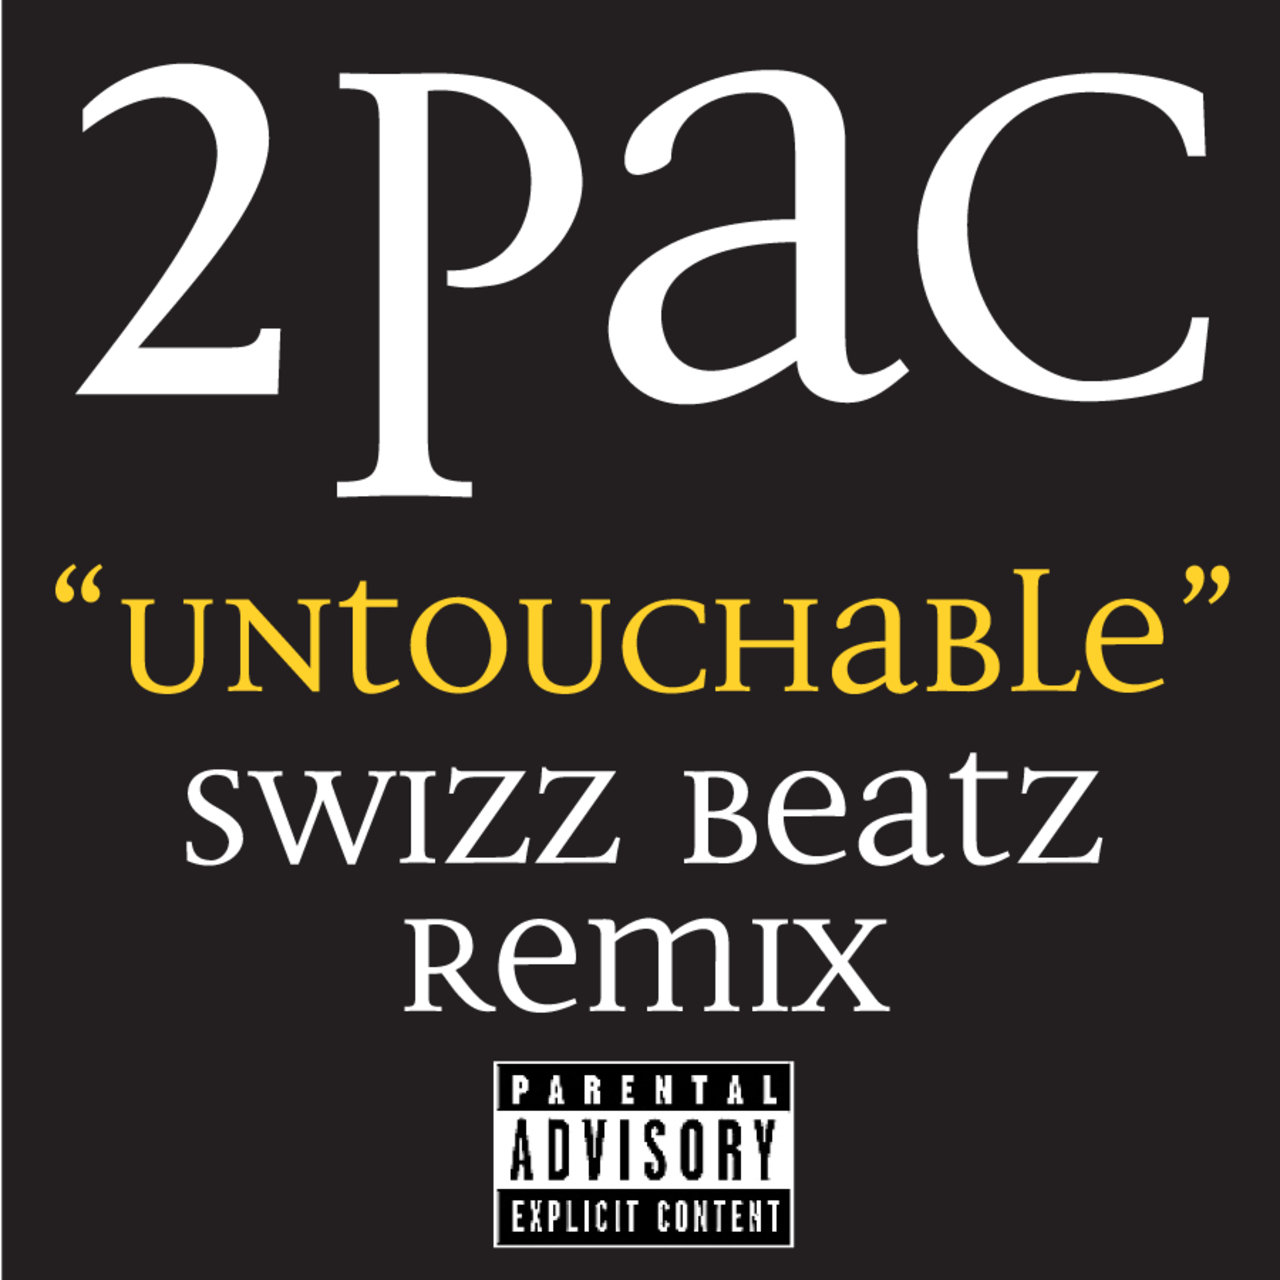 Untouchable Swizz Beatz Remix